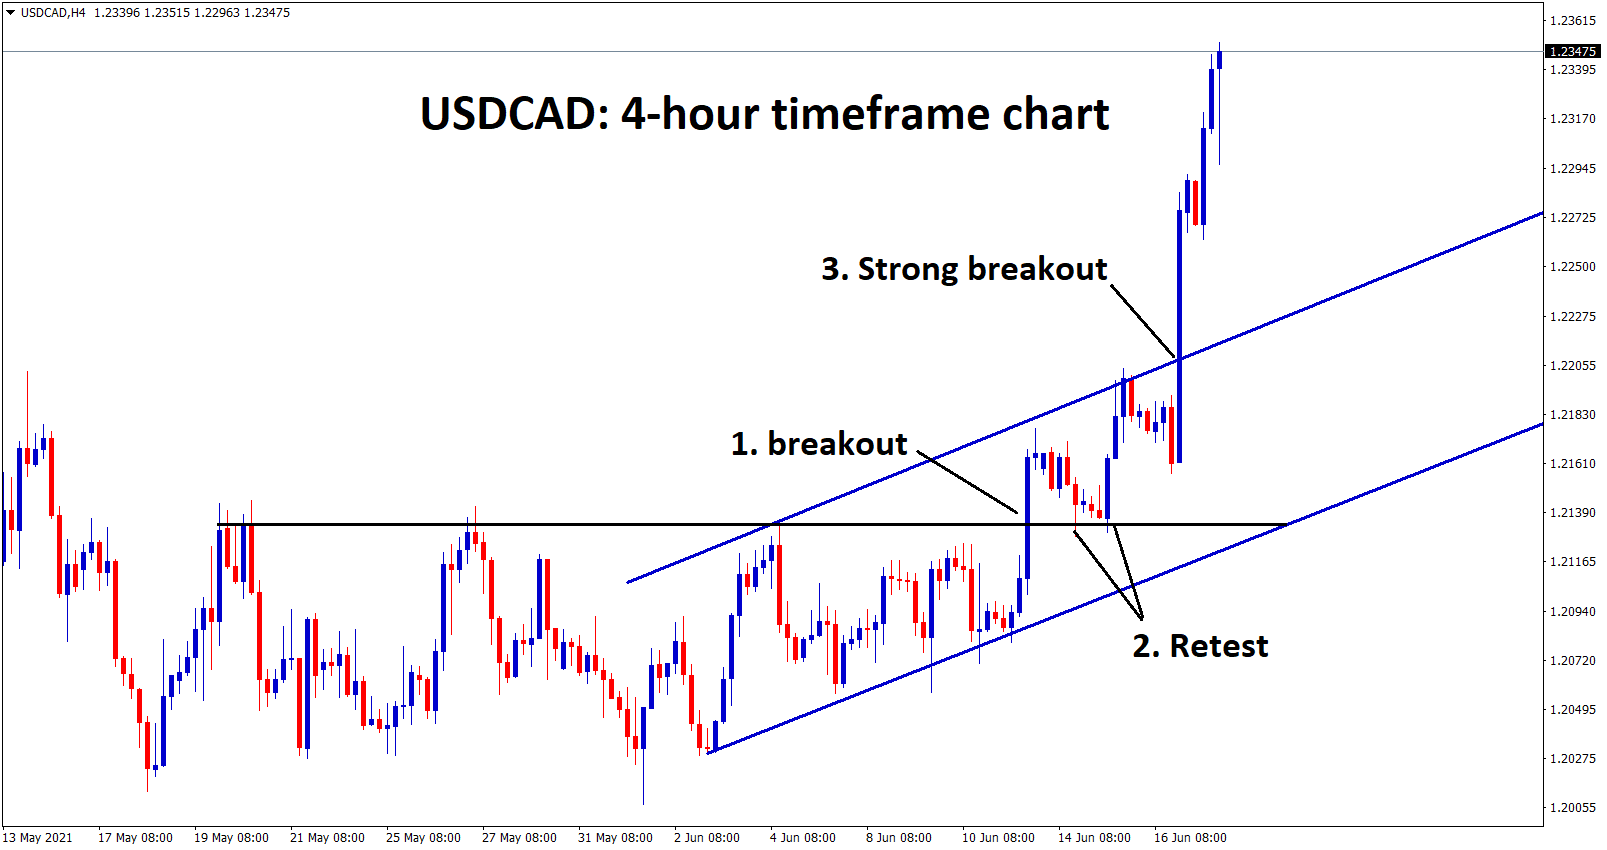 USDCAD has broken the ascending hcannel and continues to surge with extreme buyers pressure